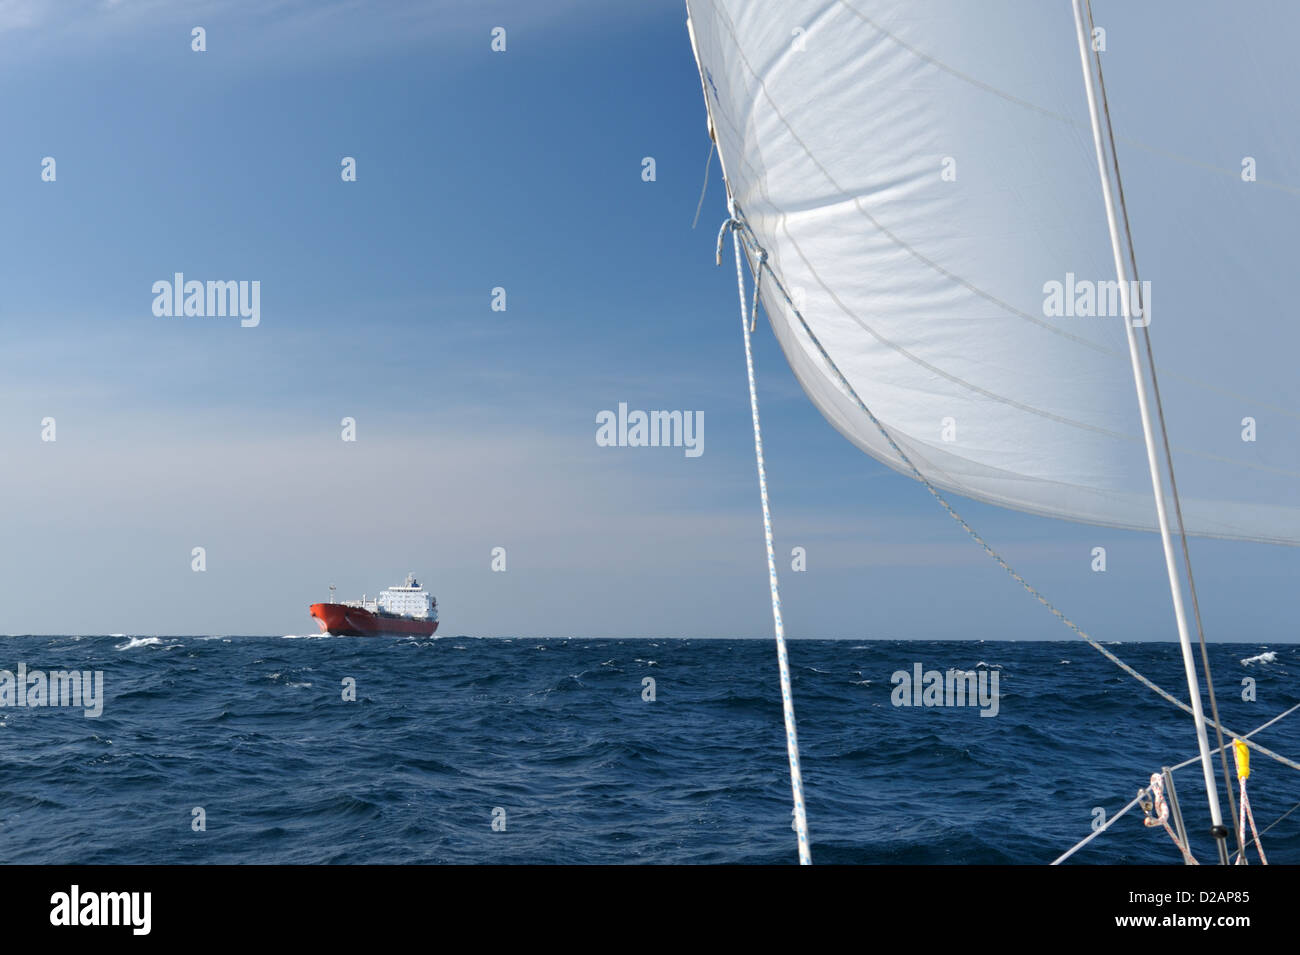 Reasons for keeping a look out. A cargo boat which came within an estimated 1000 feet of a sailing yacht in the Stock Photo